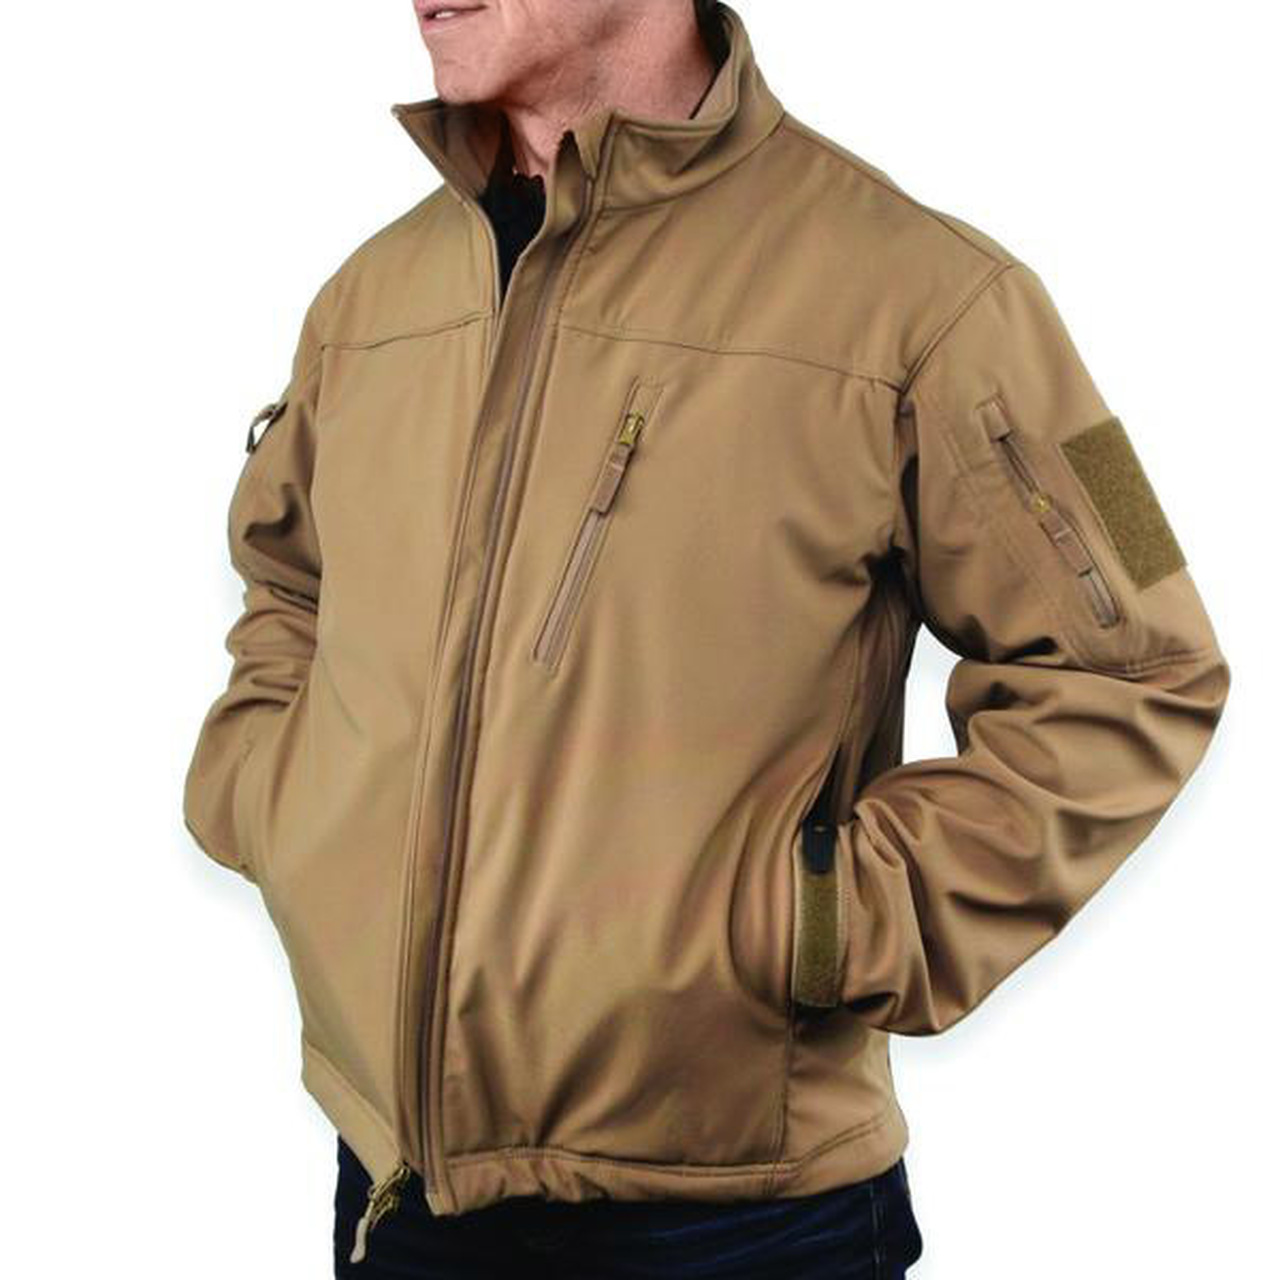 Choosing a Concealed Carry Jacket